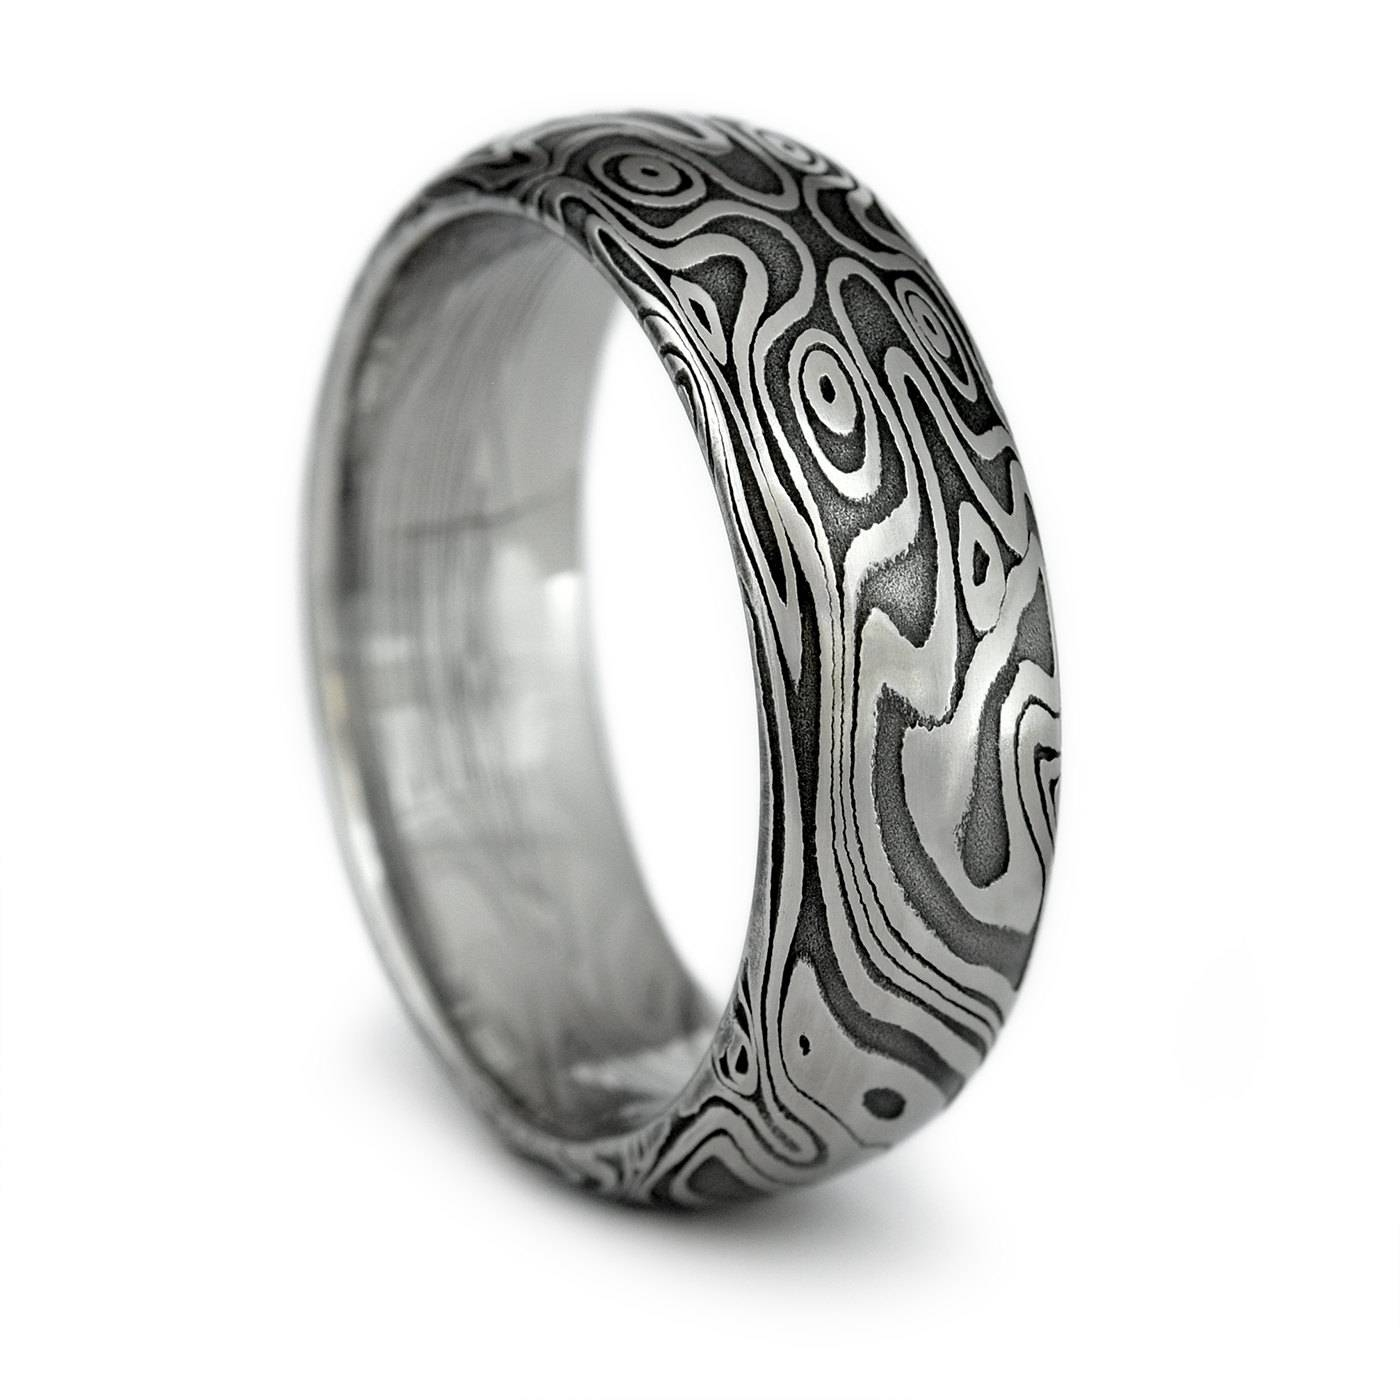 Wood Grain Ring Damascus Steel Men's Domed Wedding Band Throughout Damascus Steel Men's Wedding Bands (View 14 of 15)